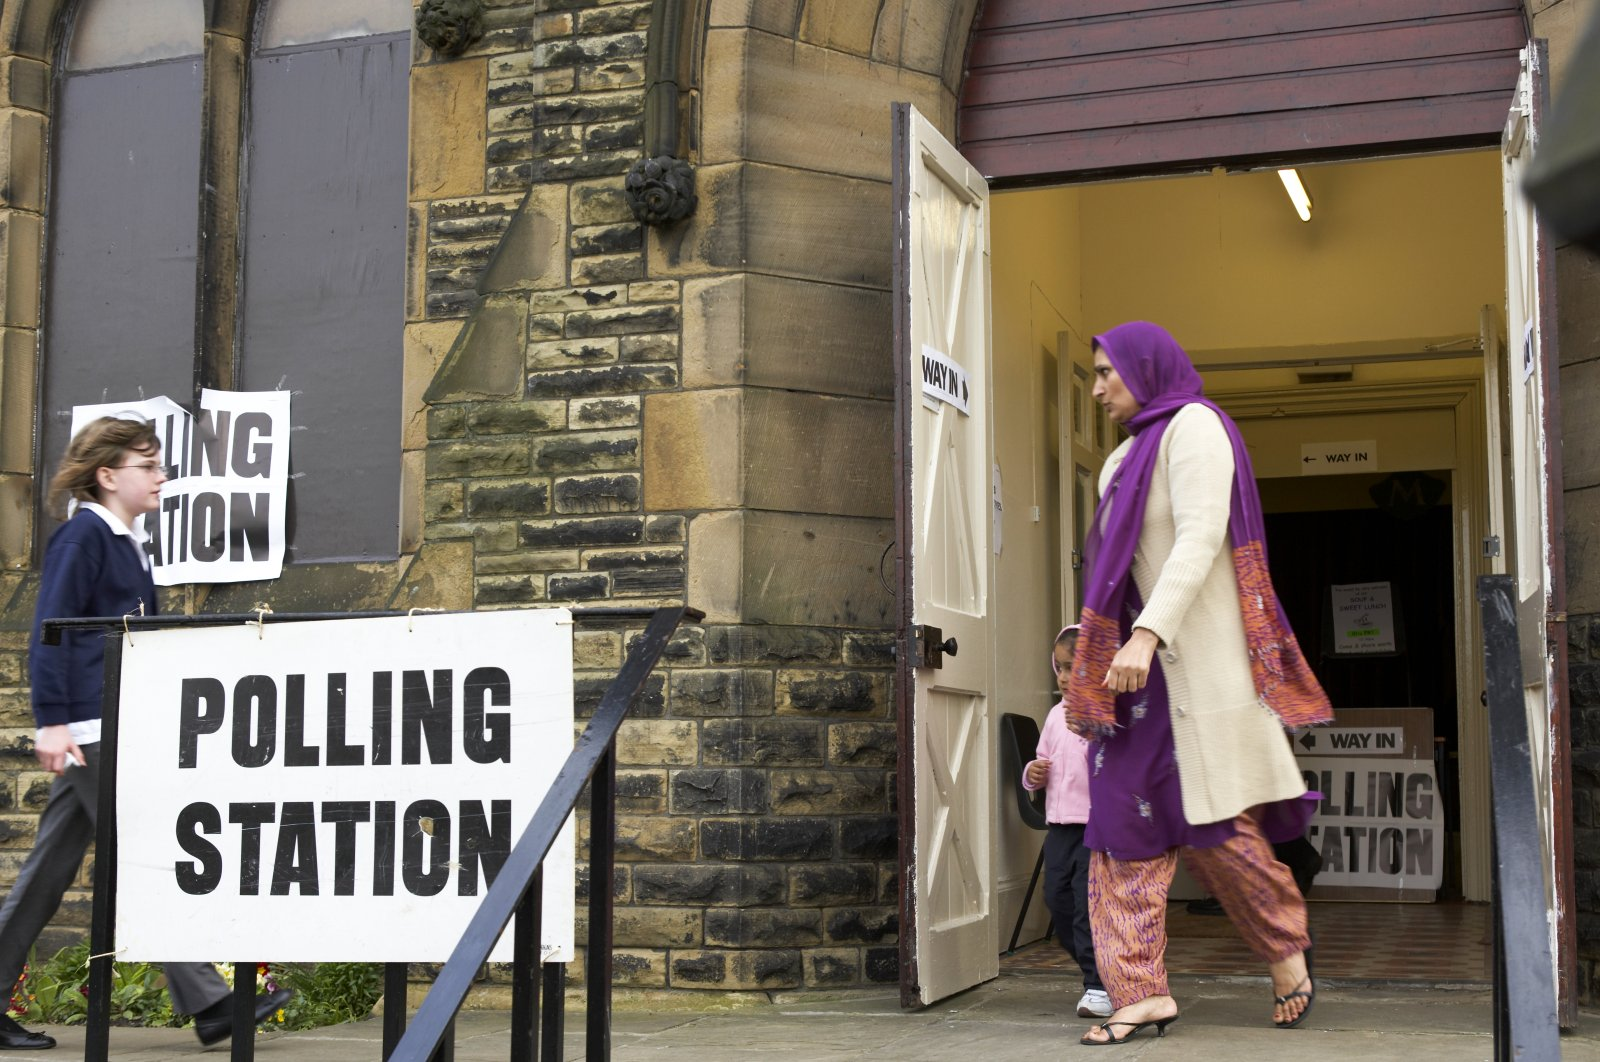 A Muslim British woman leaves a polling station after voting in an election, Dewsbury, West Yorkshire, U.K., May 8, 2005. (Shutterstock Photo)